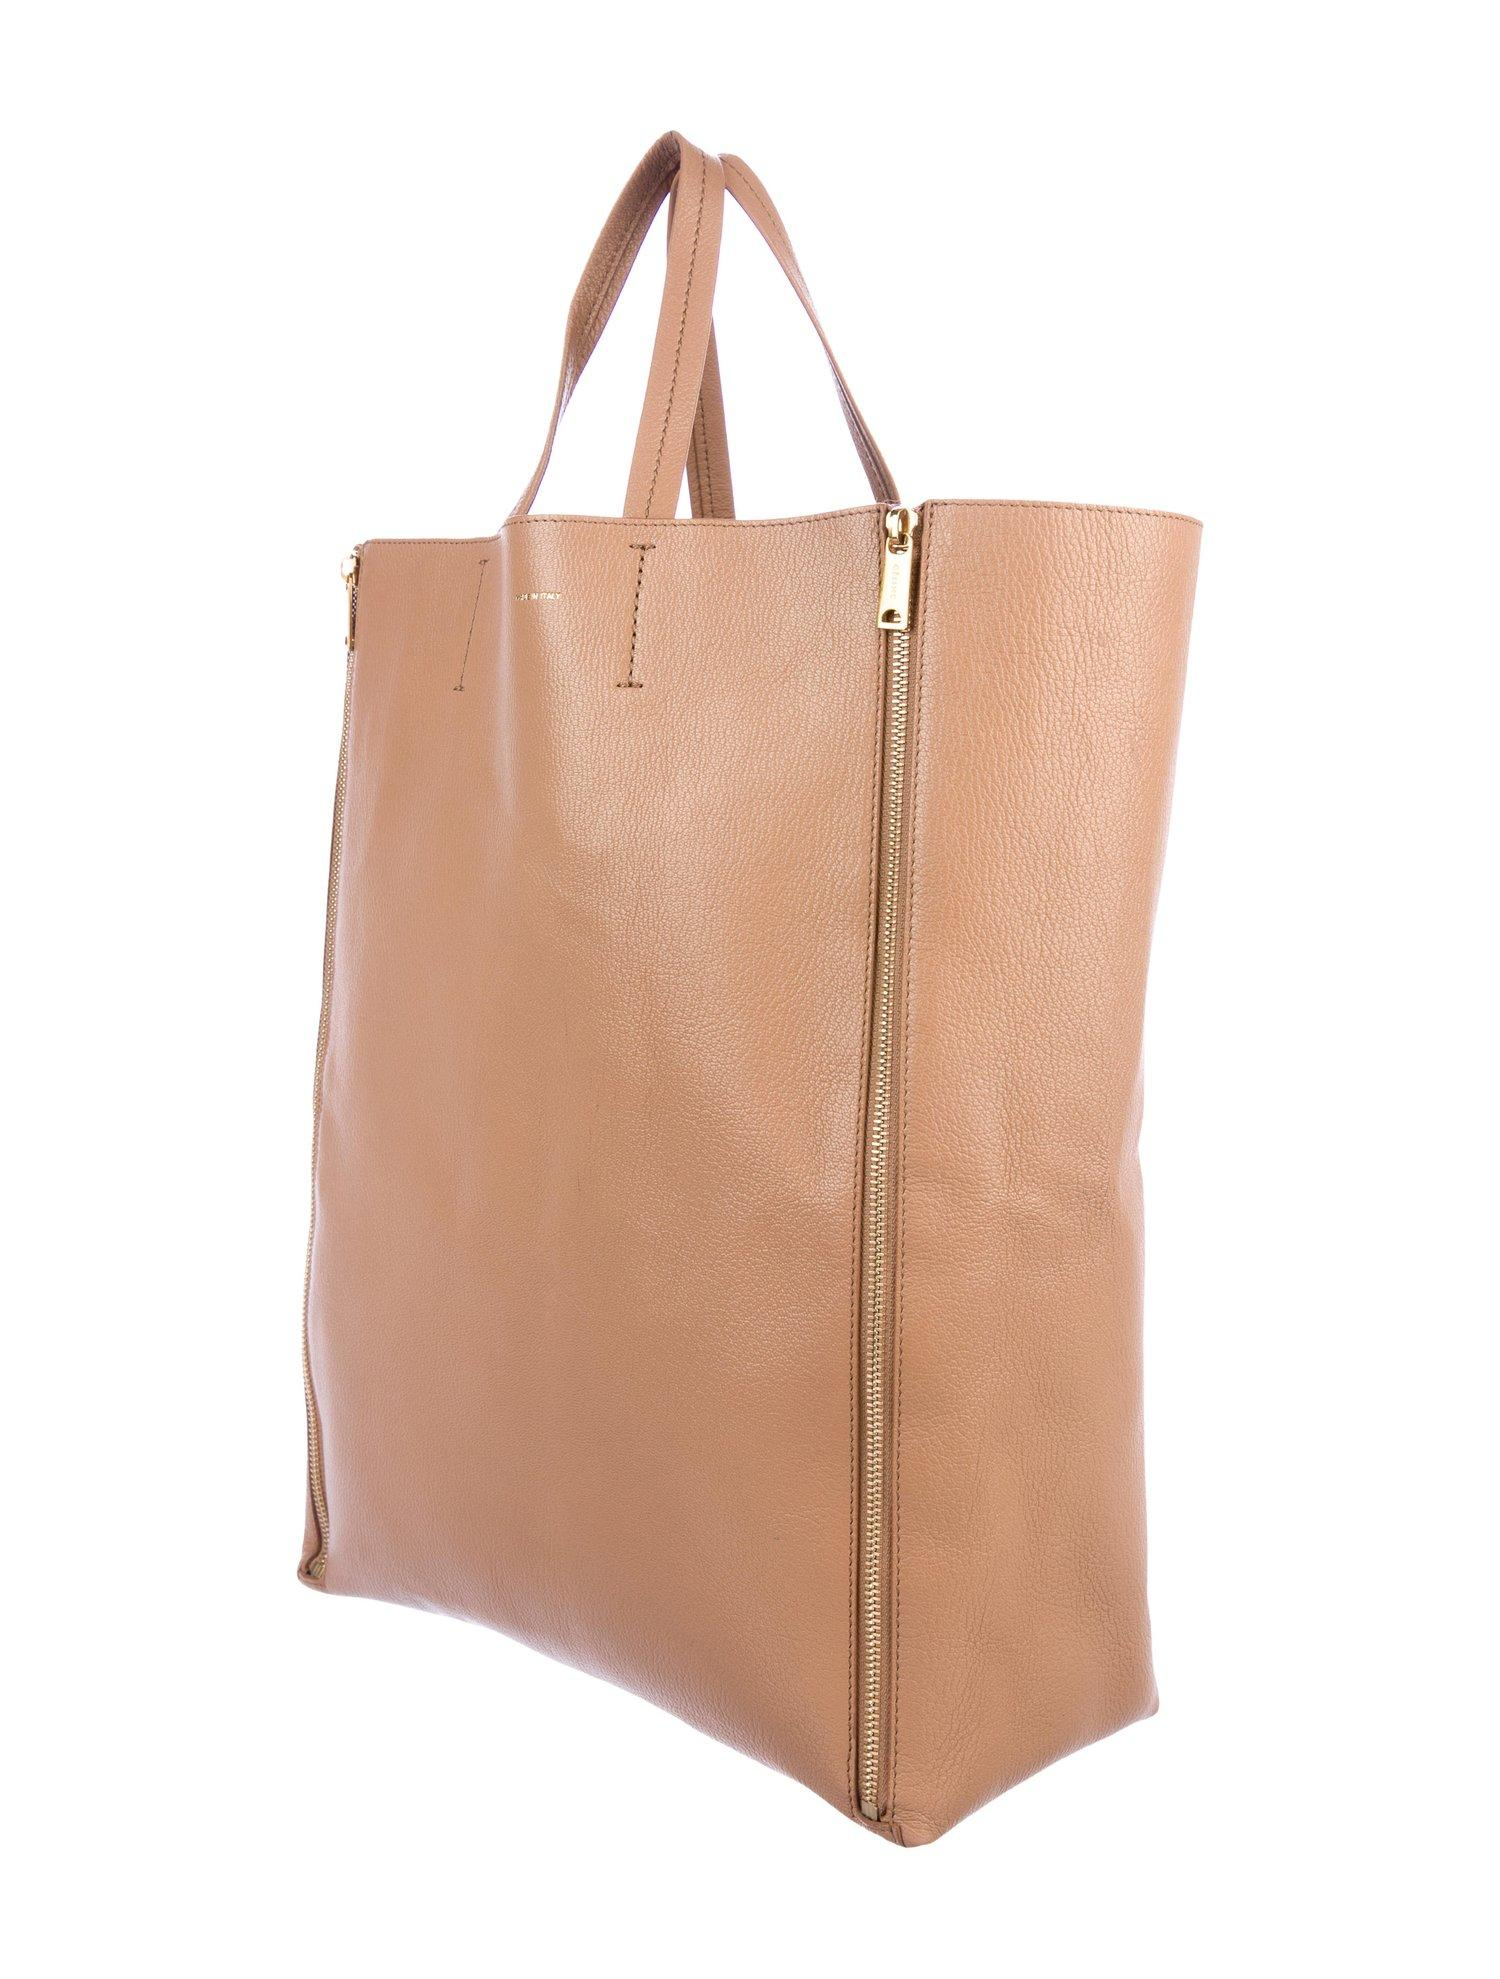 6bba0ae94 Celine Phoebe Philo NEW Tan Cognac Leather Gold Zipper Carryall Travel Tote  Bag at 1stdibs